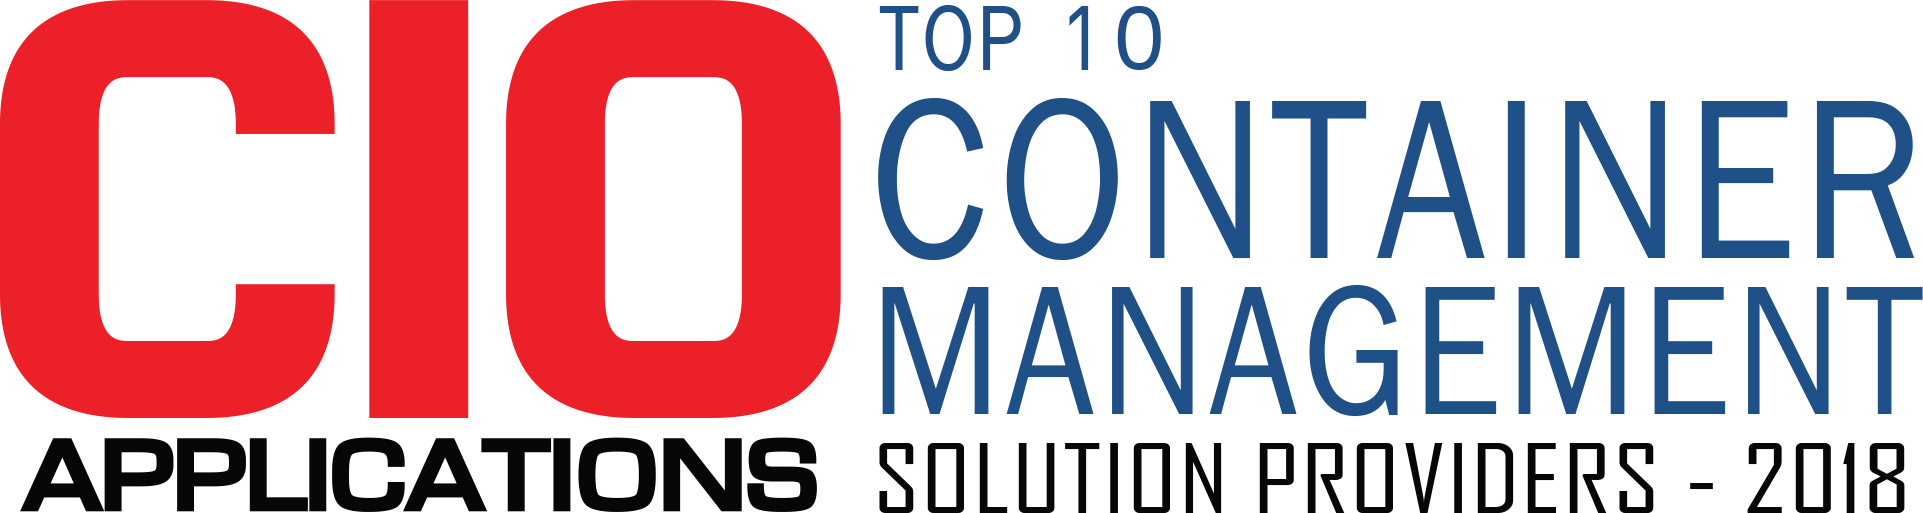 Top 10 Companies Providing Container Management Solution  - 2018